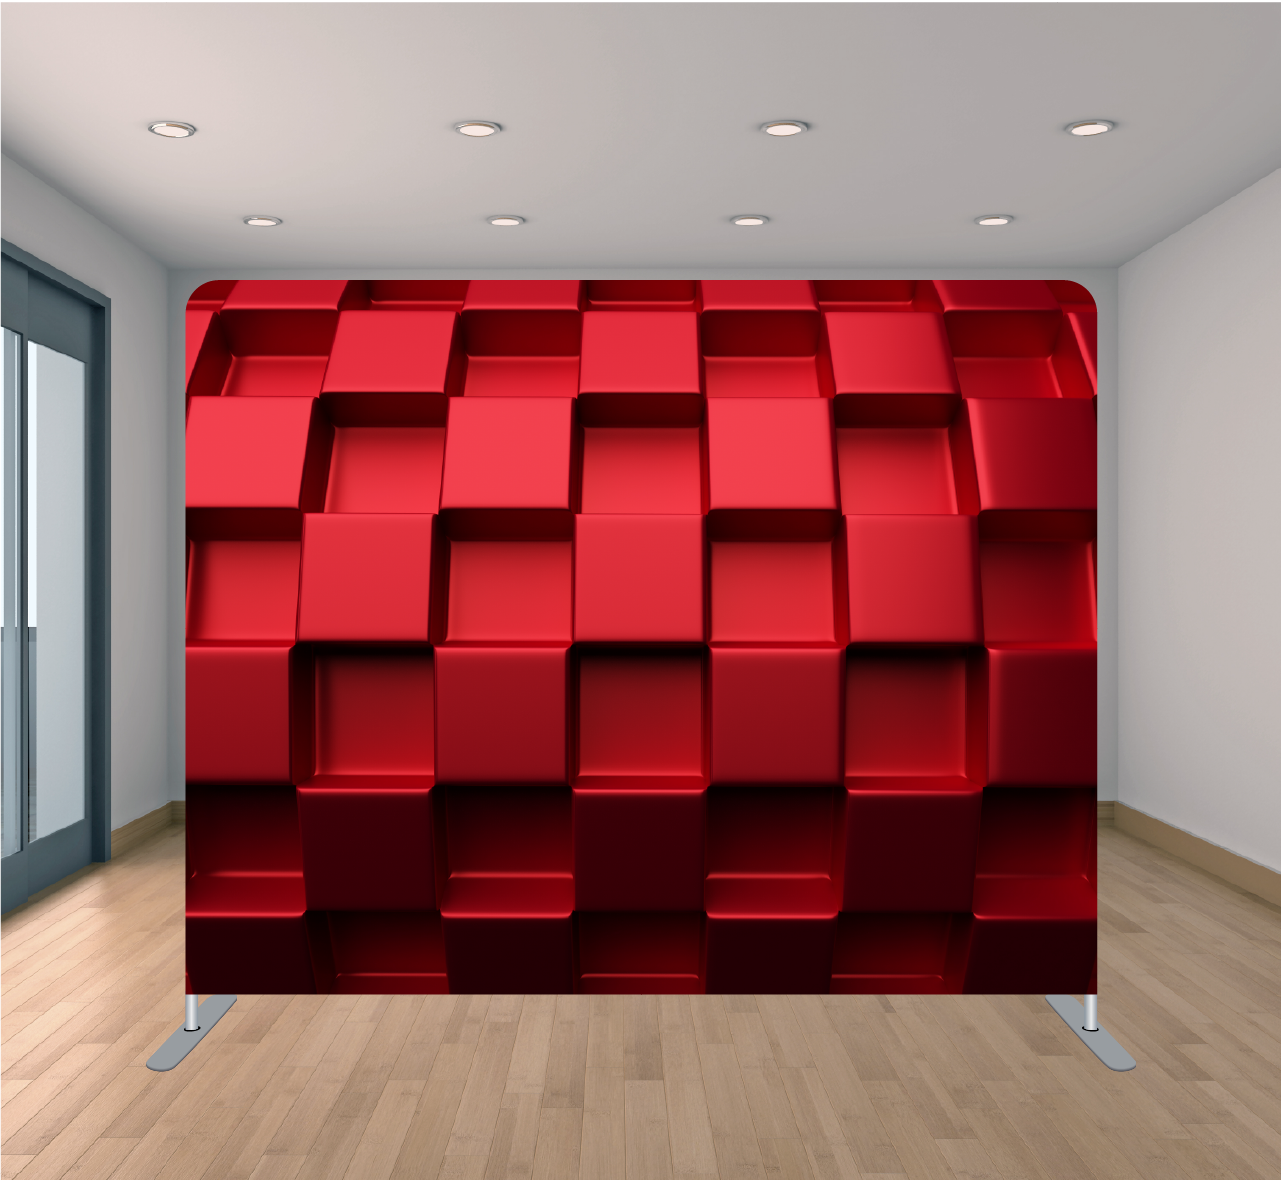 8X8ft Pillowcase Tension Backdrop- 3D Red Blocks